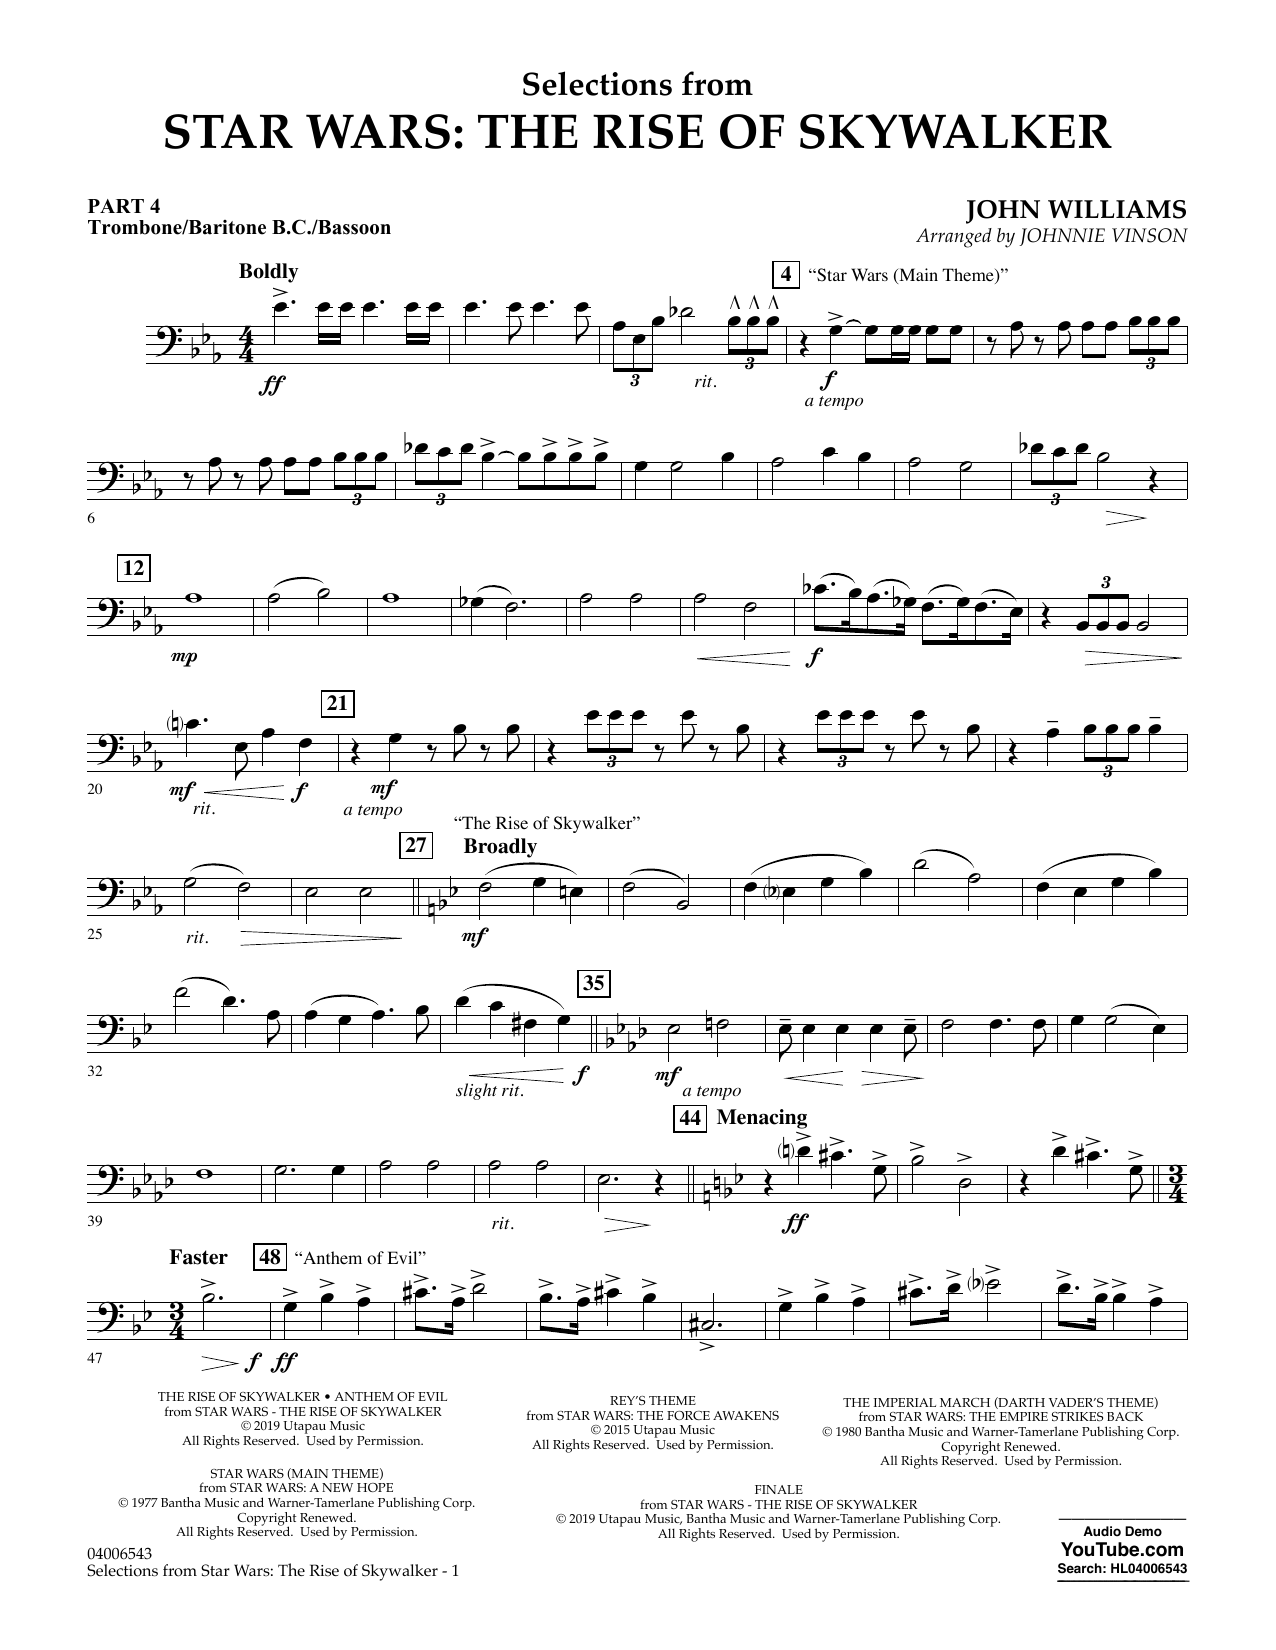 John Williams Selections from Star Wars: The Rise of Skywalker - Pt.4 - Trombone/Bar. B.C./Bsn. sheet music notes and chords. Download Printable PDF.